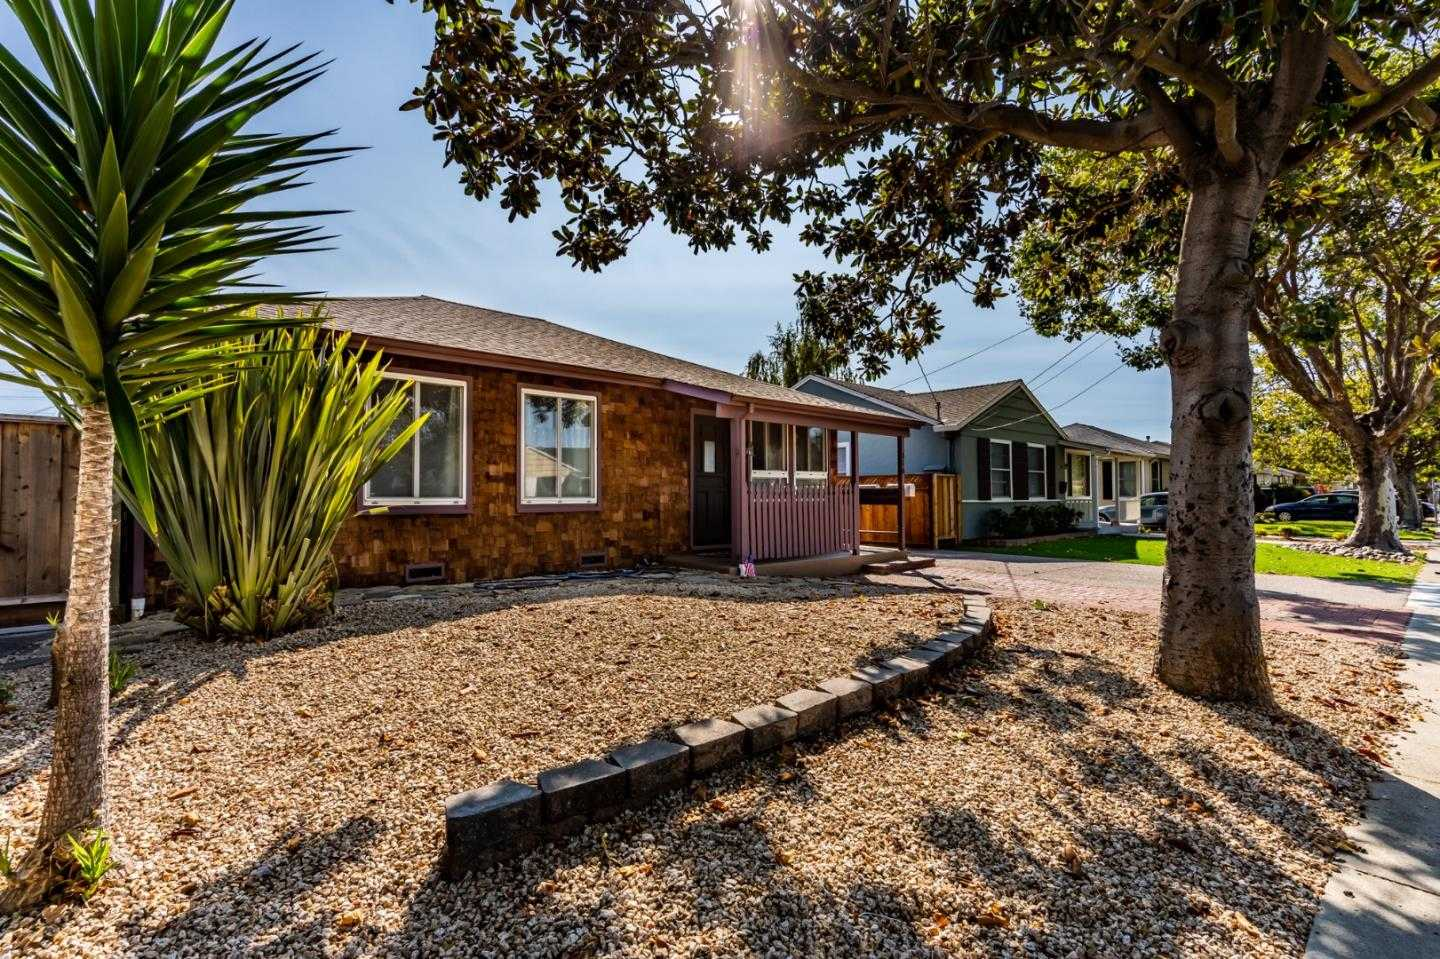 $1,499,000 - 4Br/2Ba -  for Sale in Millbrae